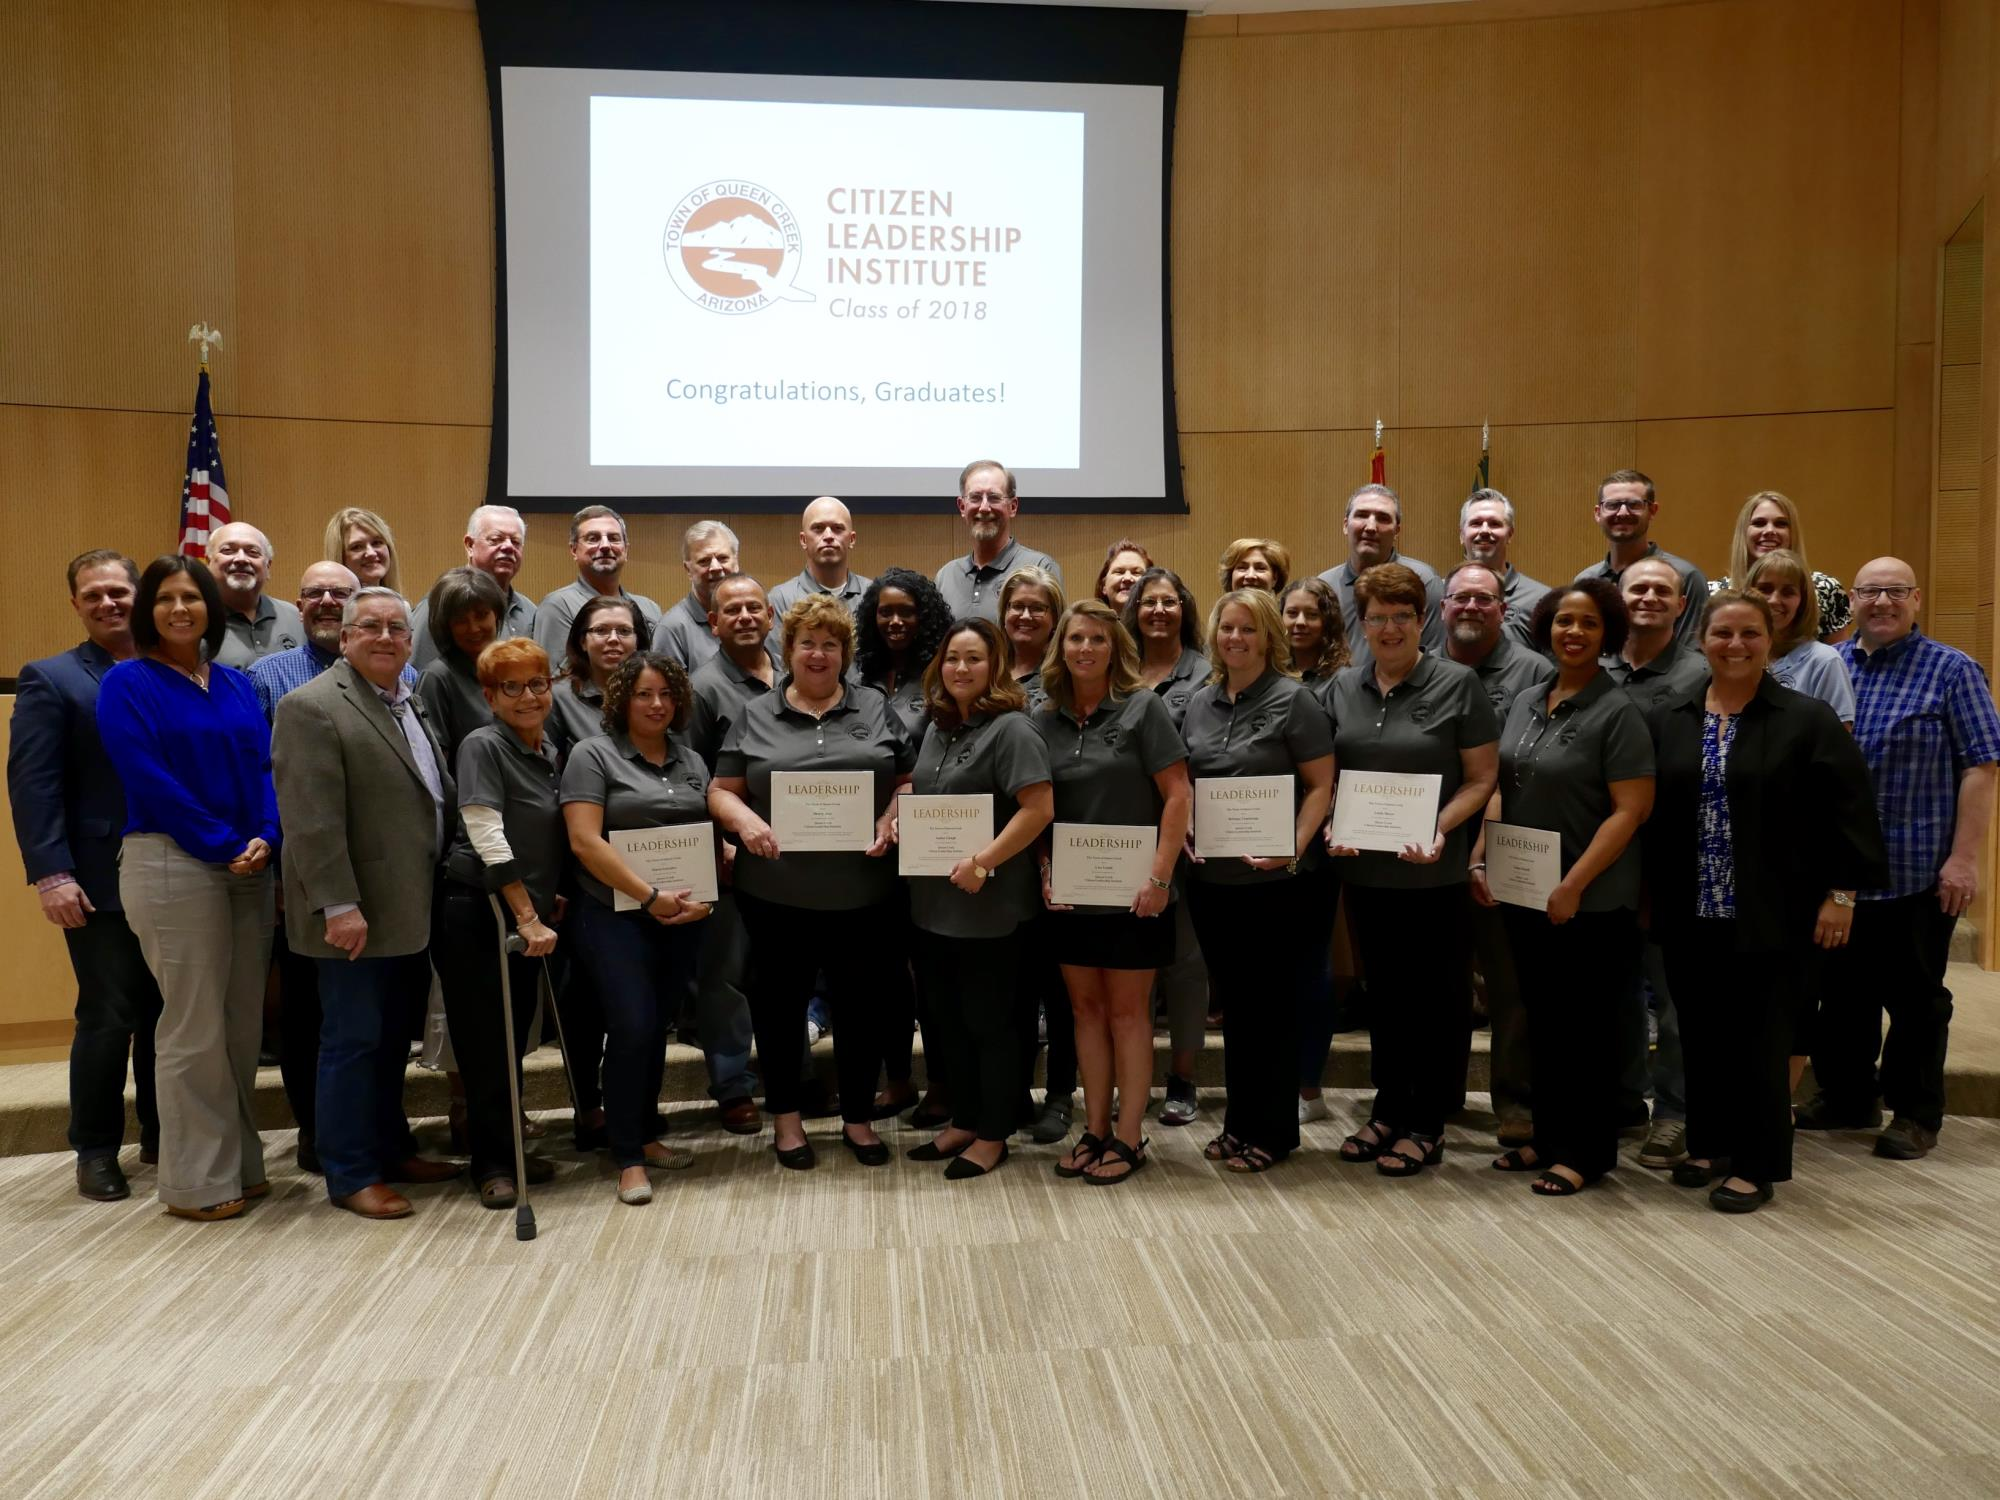 Mayor Barney and the Town Council with the Queen Creek 2018 CLI Graduating Class at the May 16 Town Council Meeting